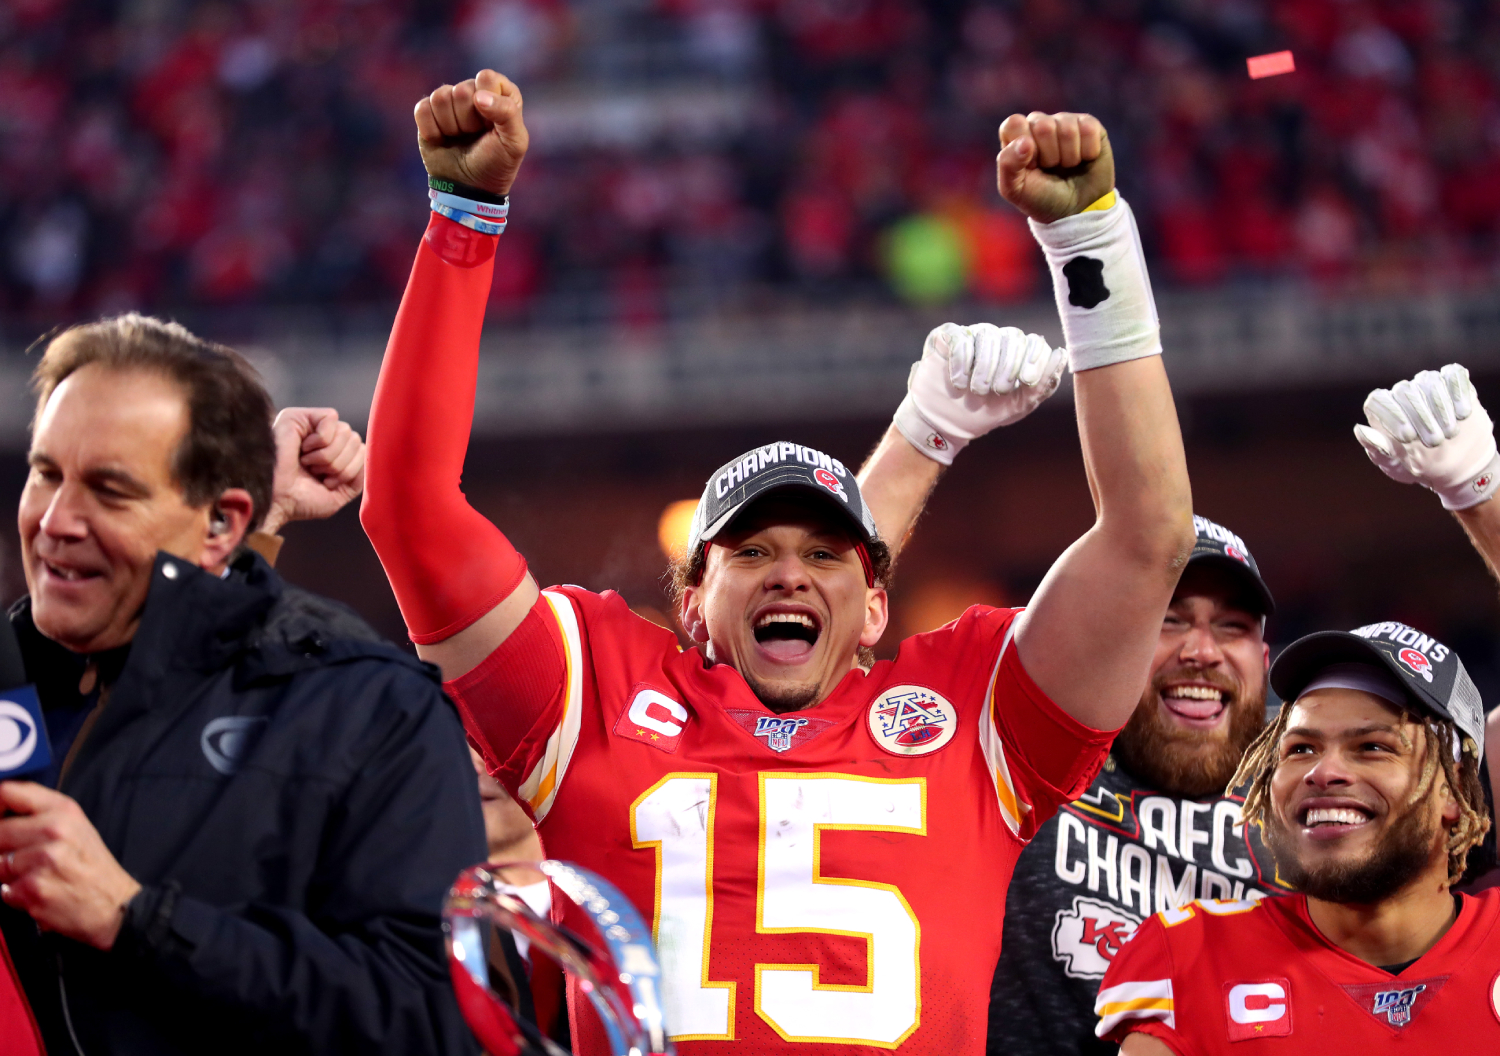 Patrick Mahomes celebrating with his teammates after winning the Super Bowl